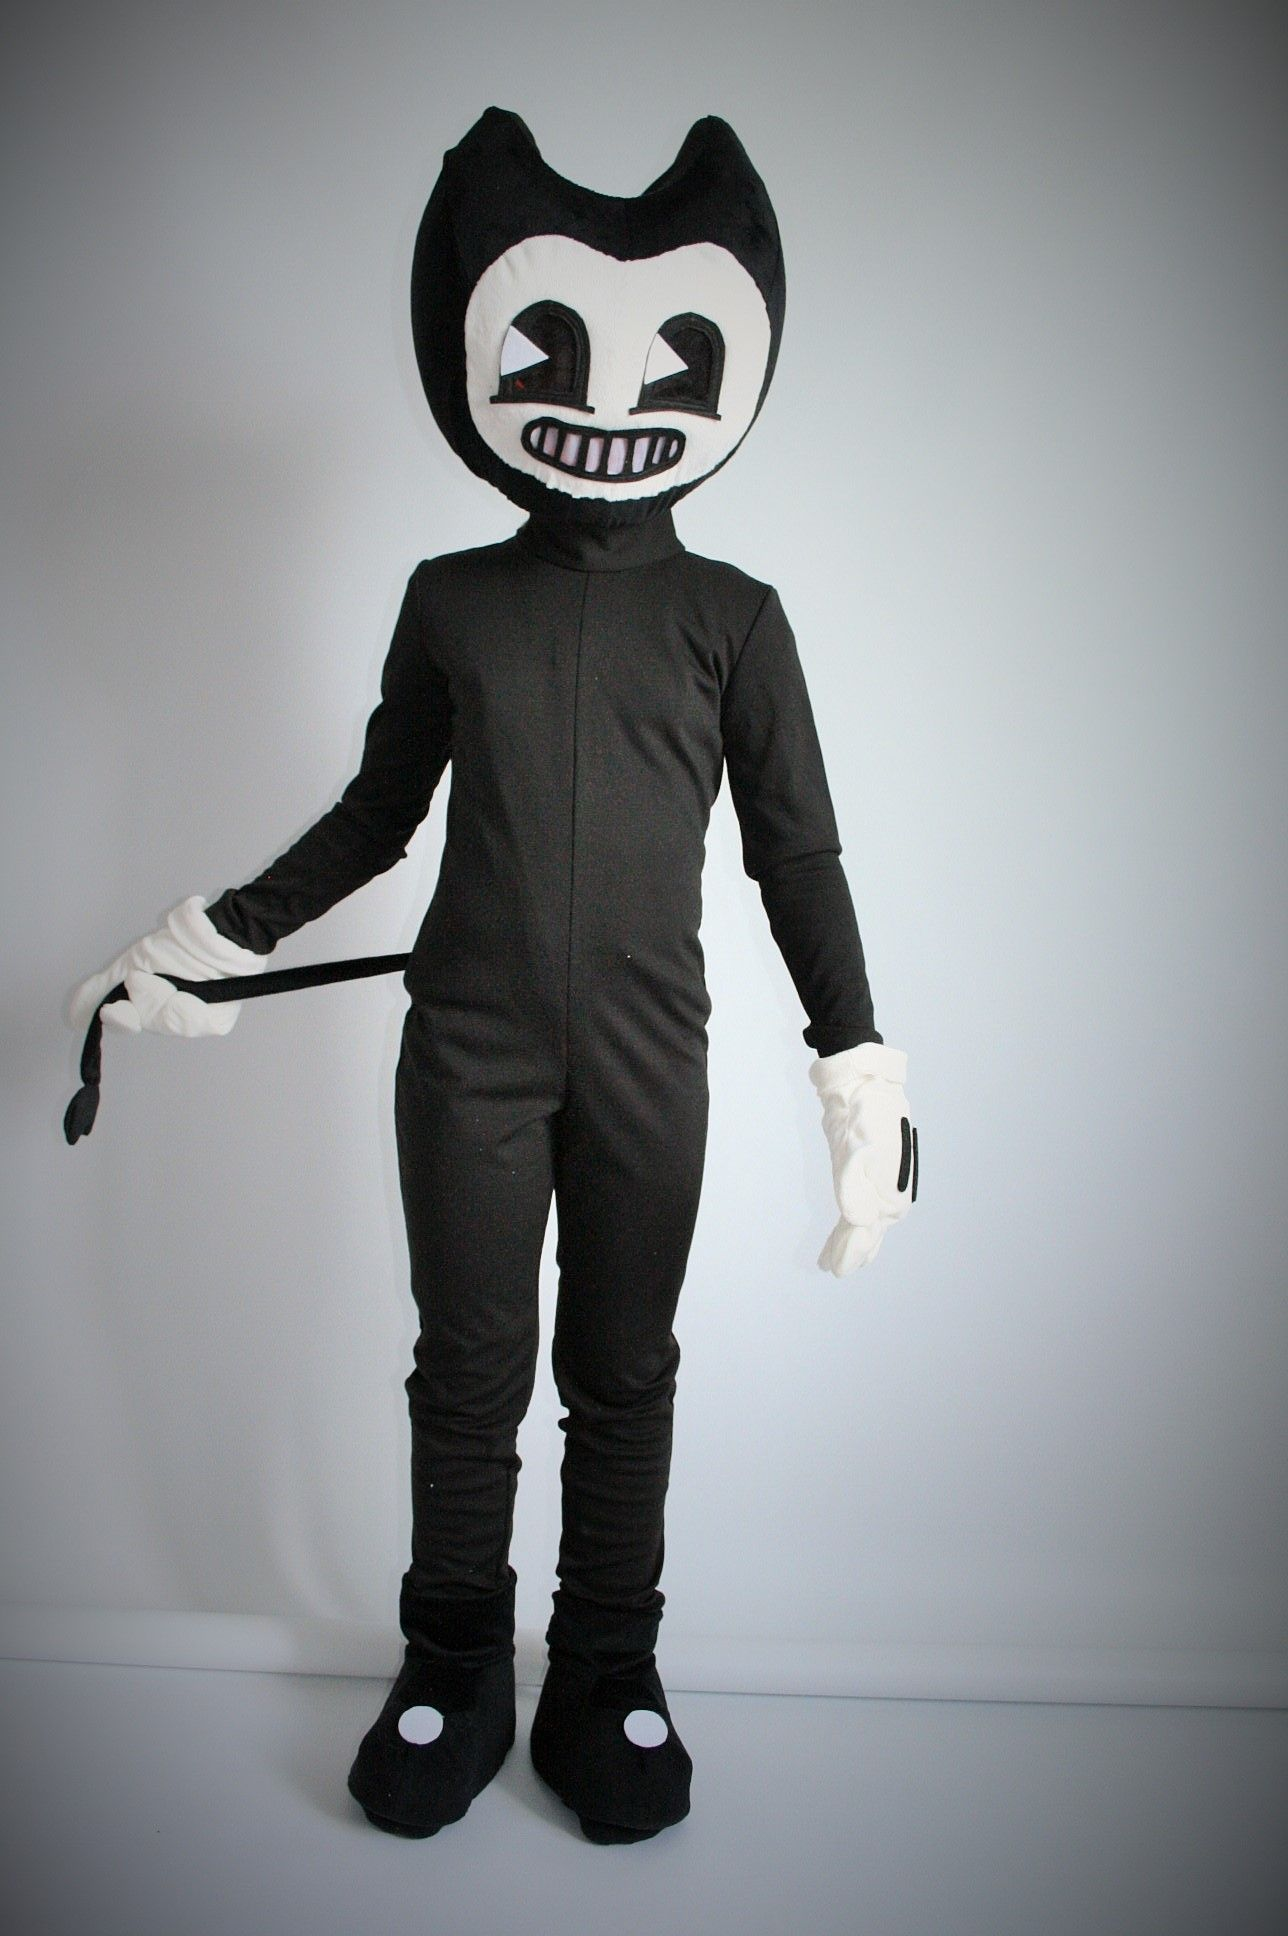 2017 05 freddy fazbear costume amazon - Bendy And The Ink Machine Halloween For Kids Costume For Sale